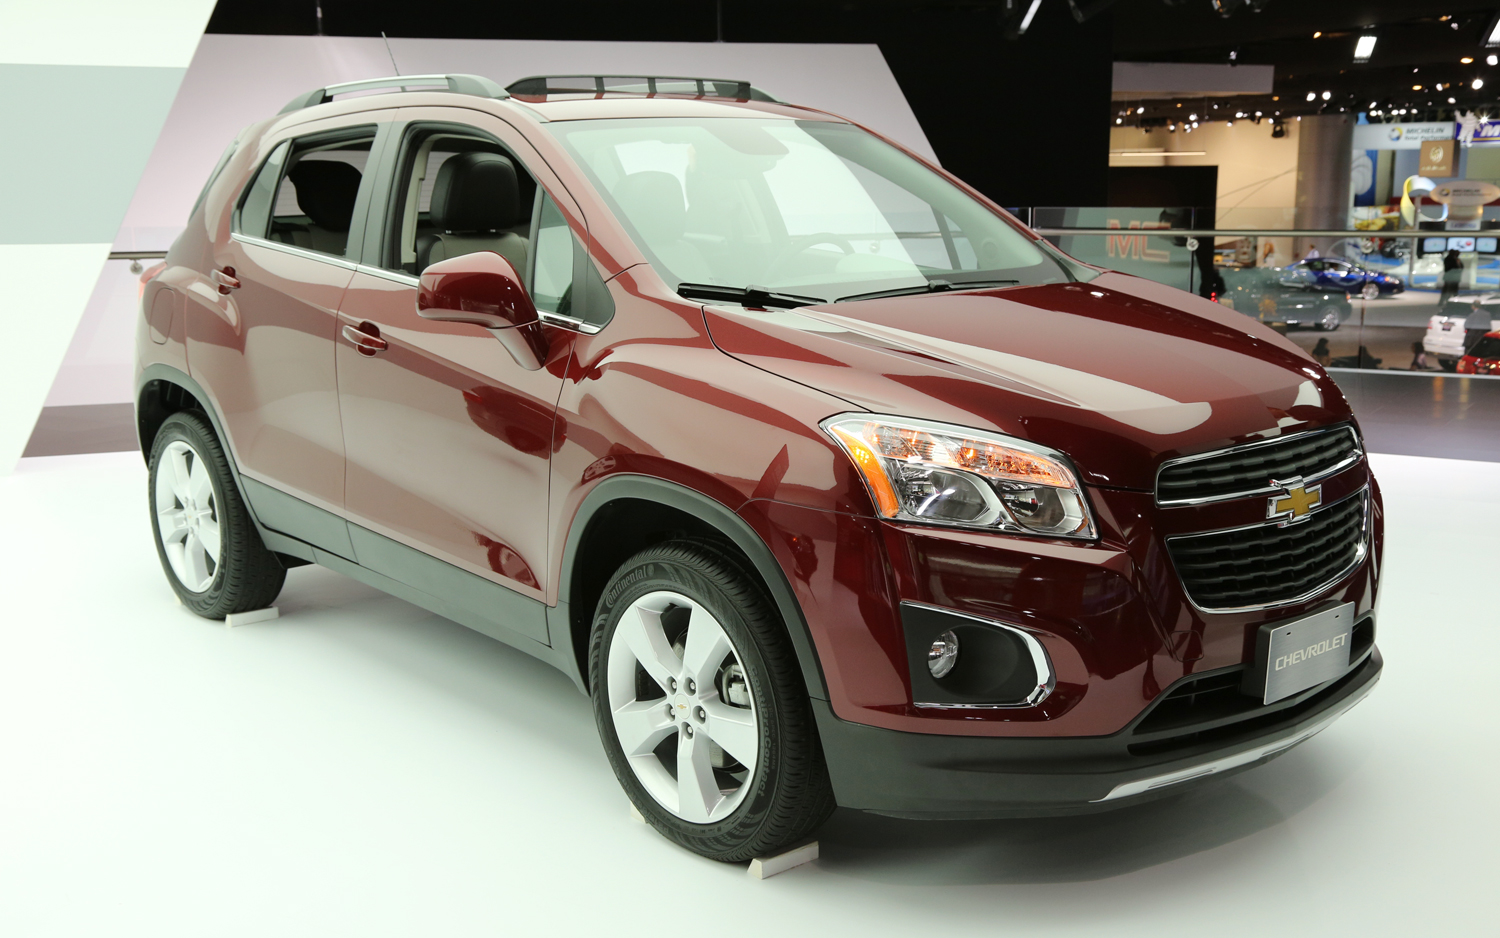 CHEVROLET TRAX brown